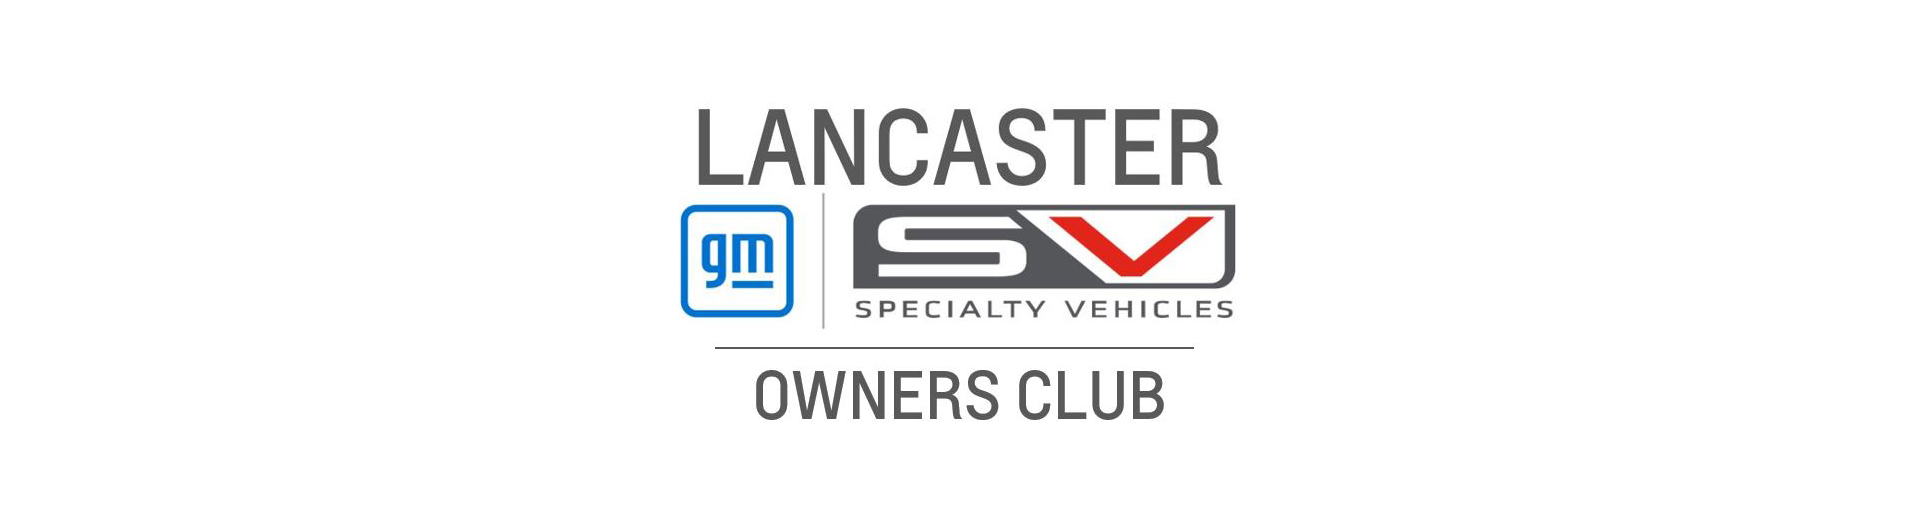 Lancaster GMSV Owners Club